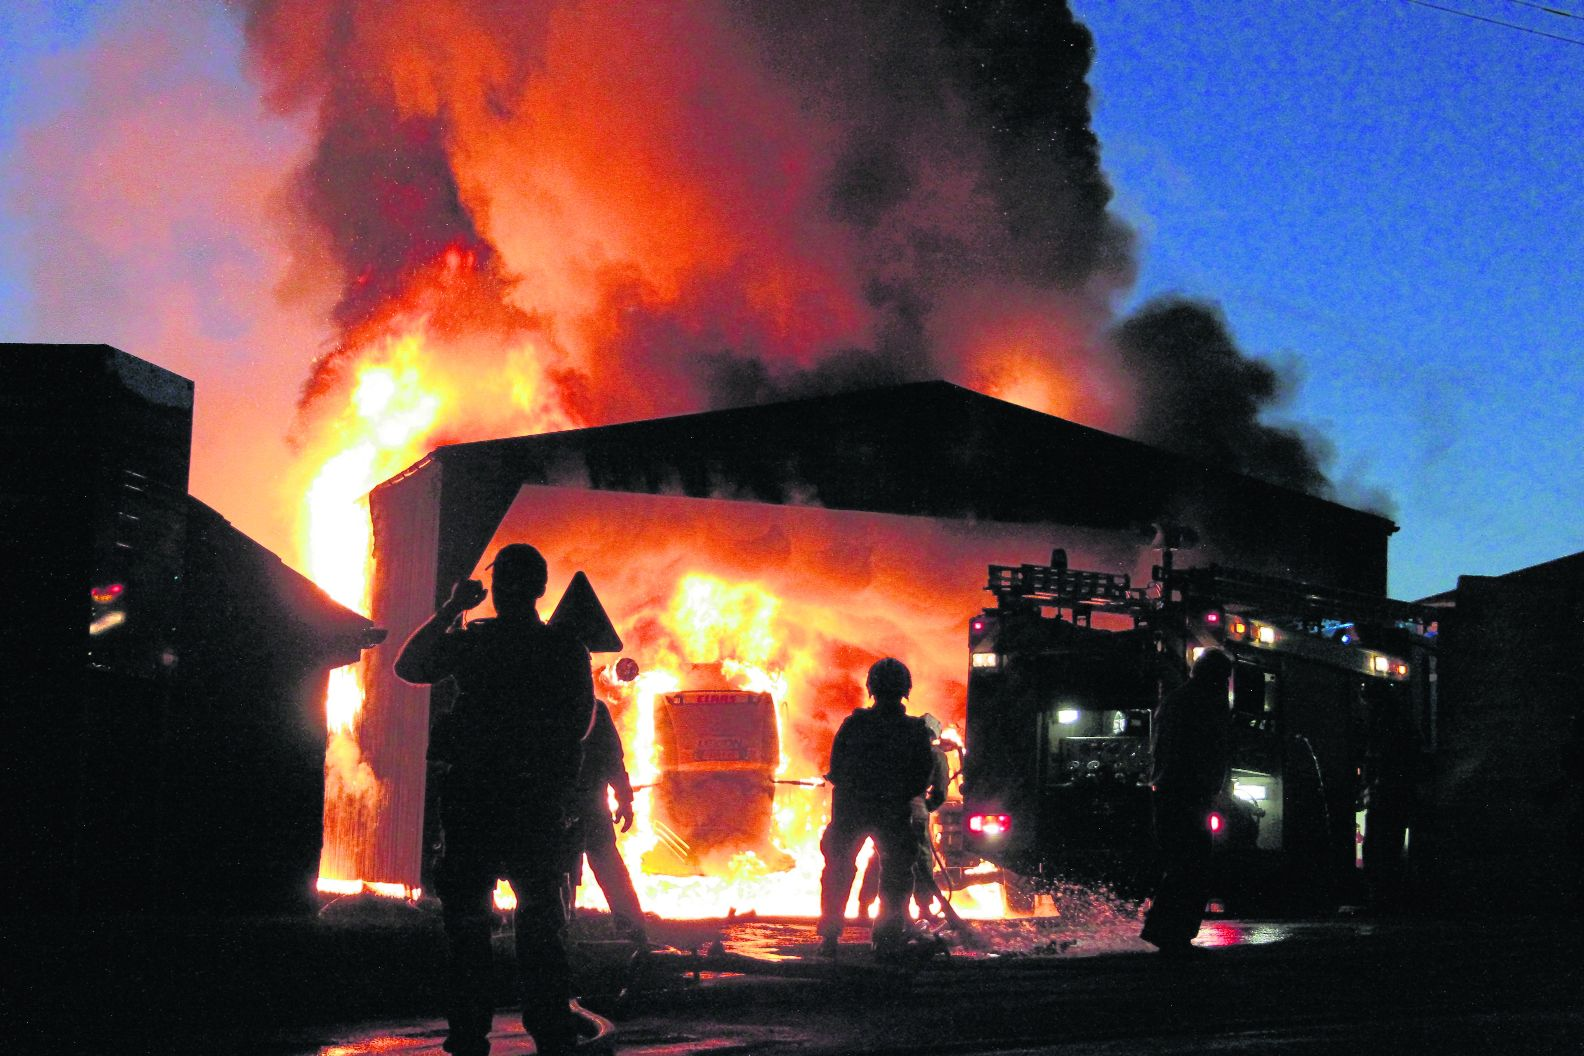 Firefighters save homes after barn inferno near Dorchester